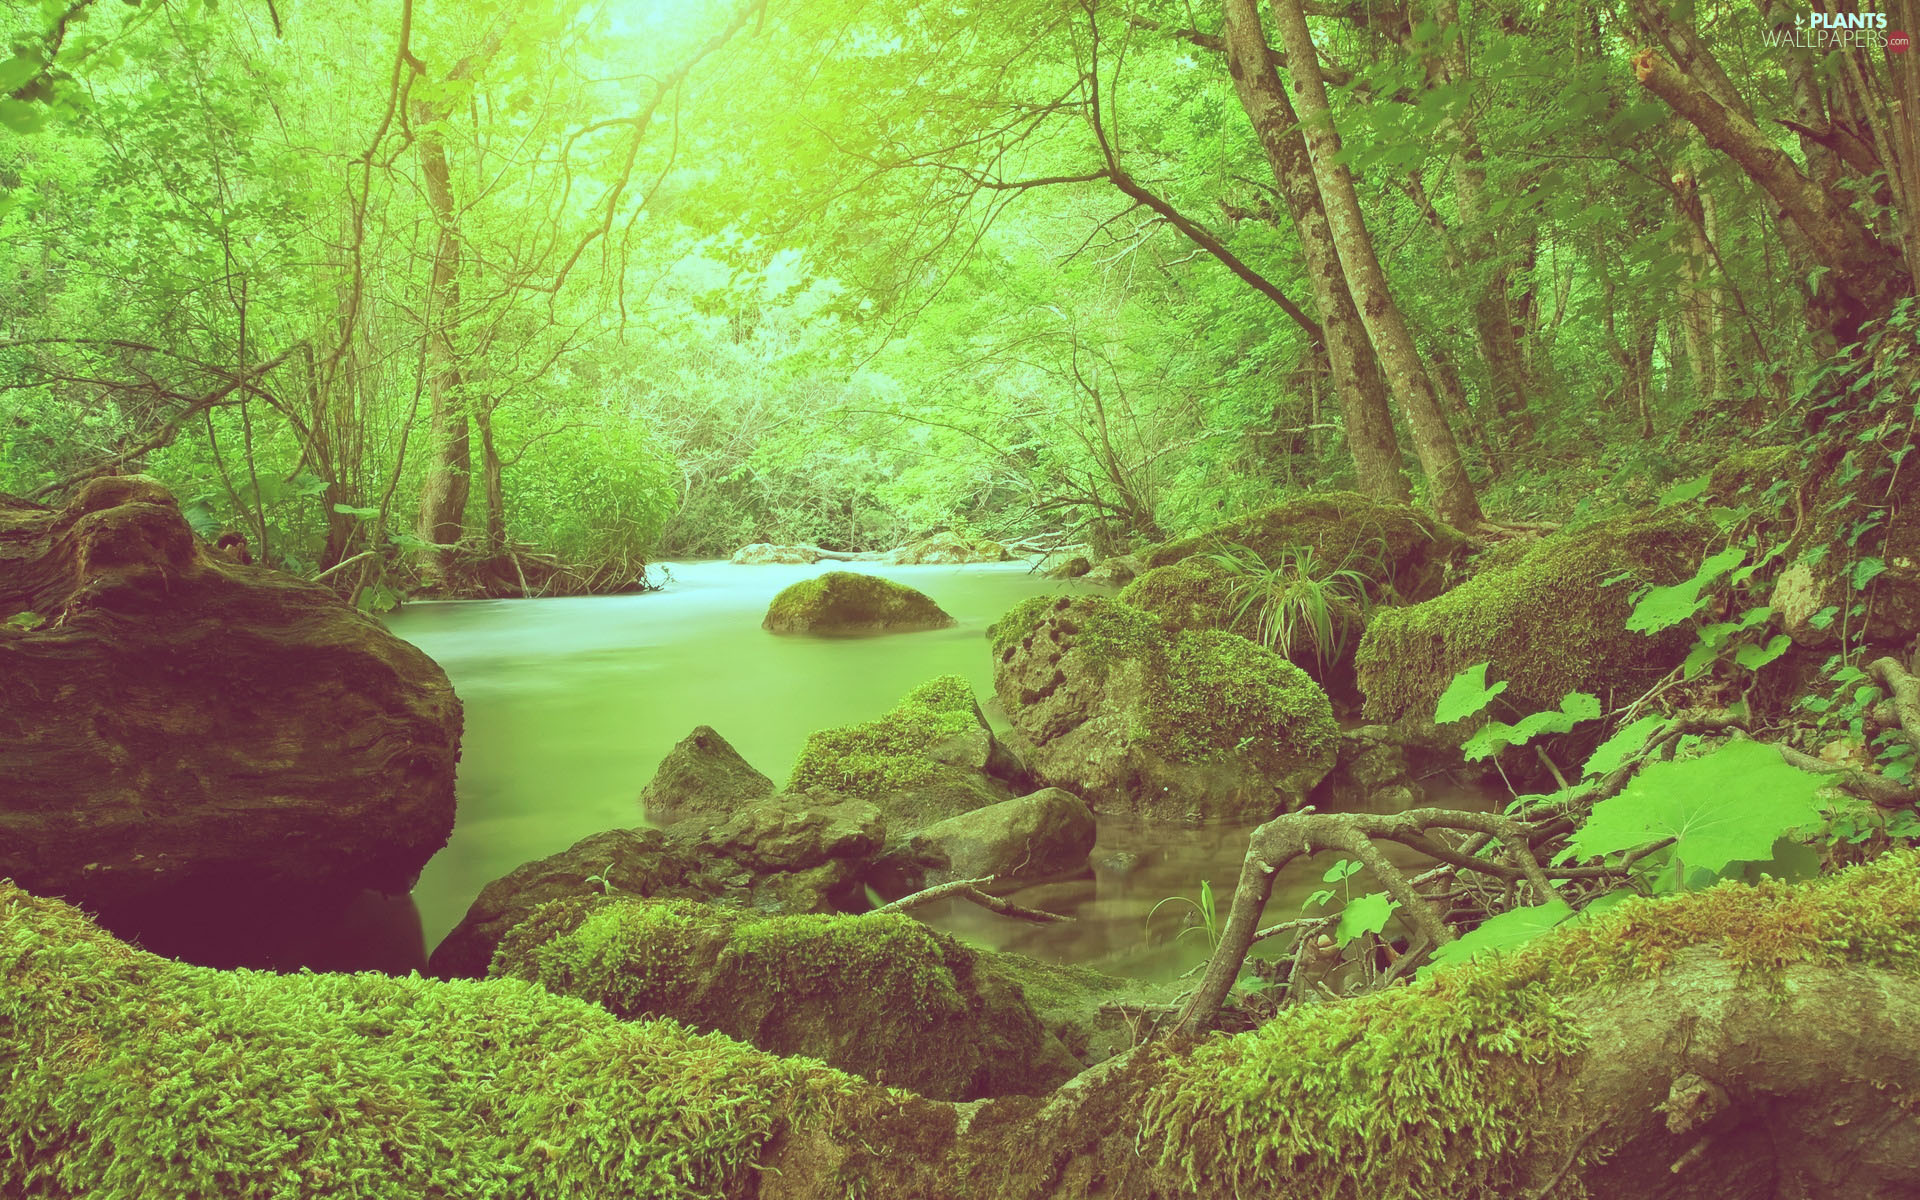 moss-green-stones-river-viewes-trees